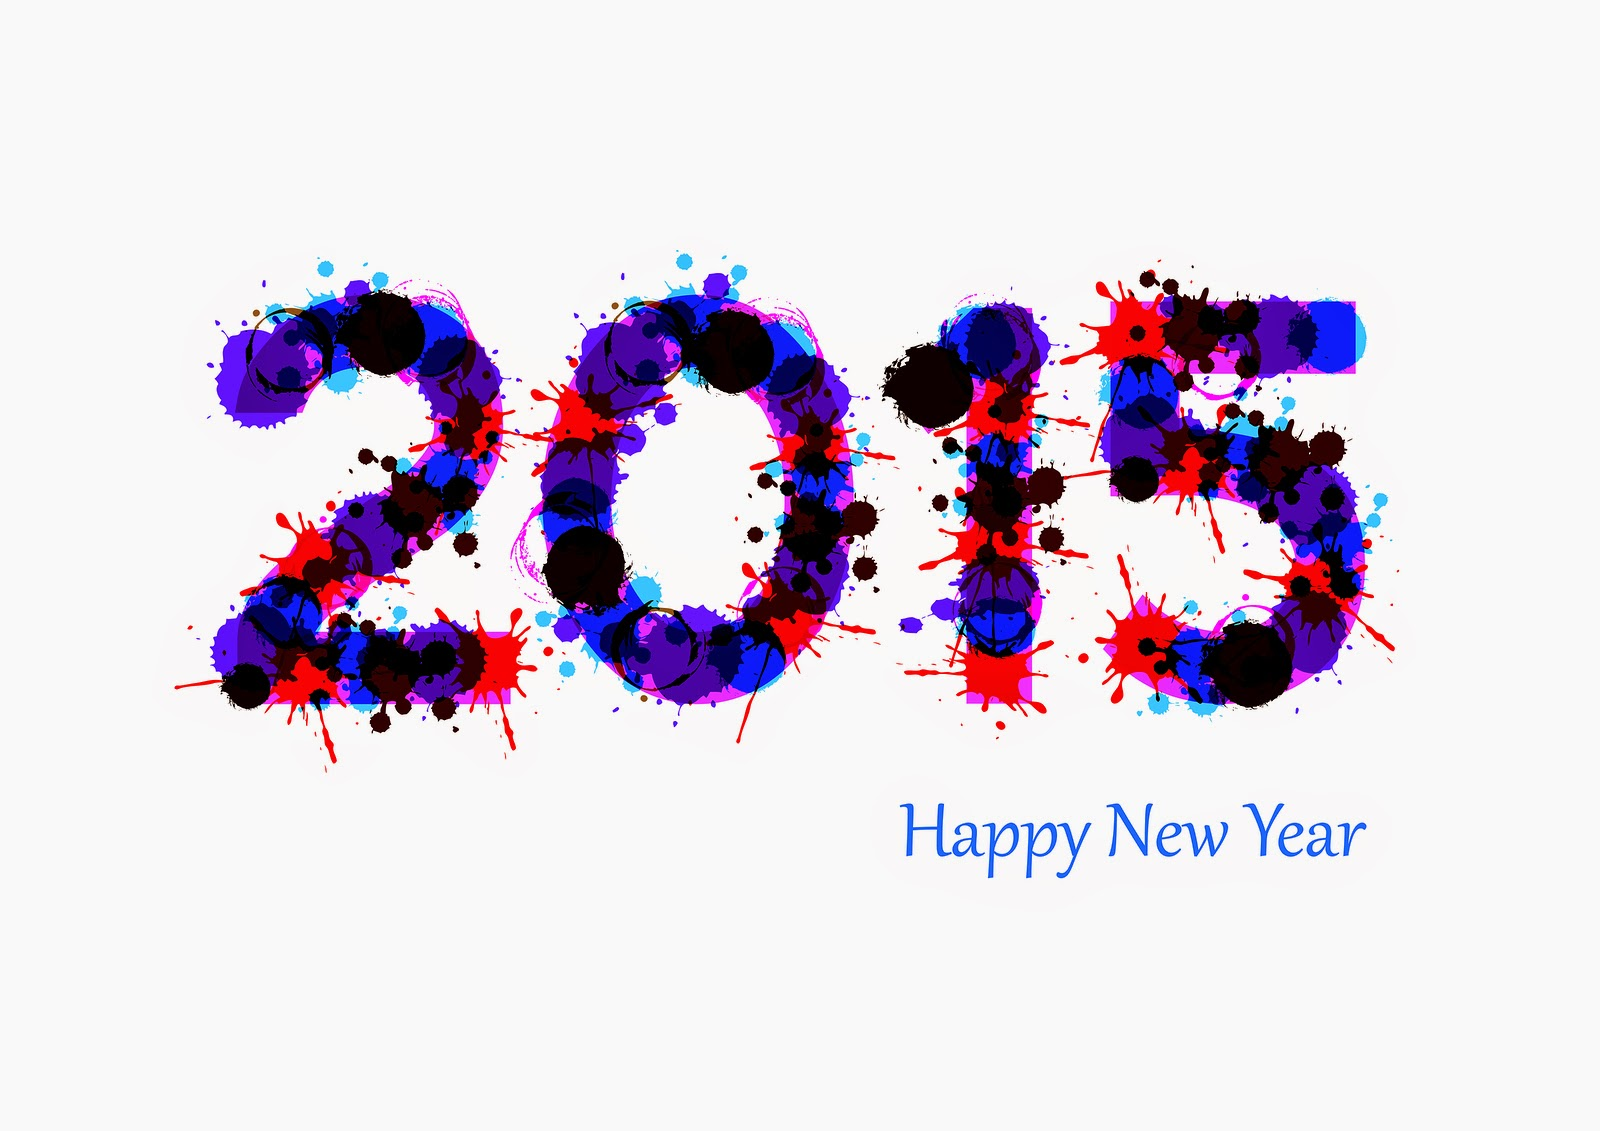 New Year 2015 Wishes And Greetings